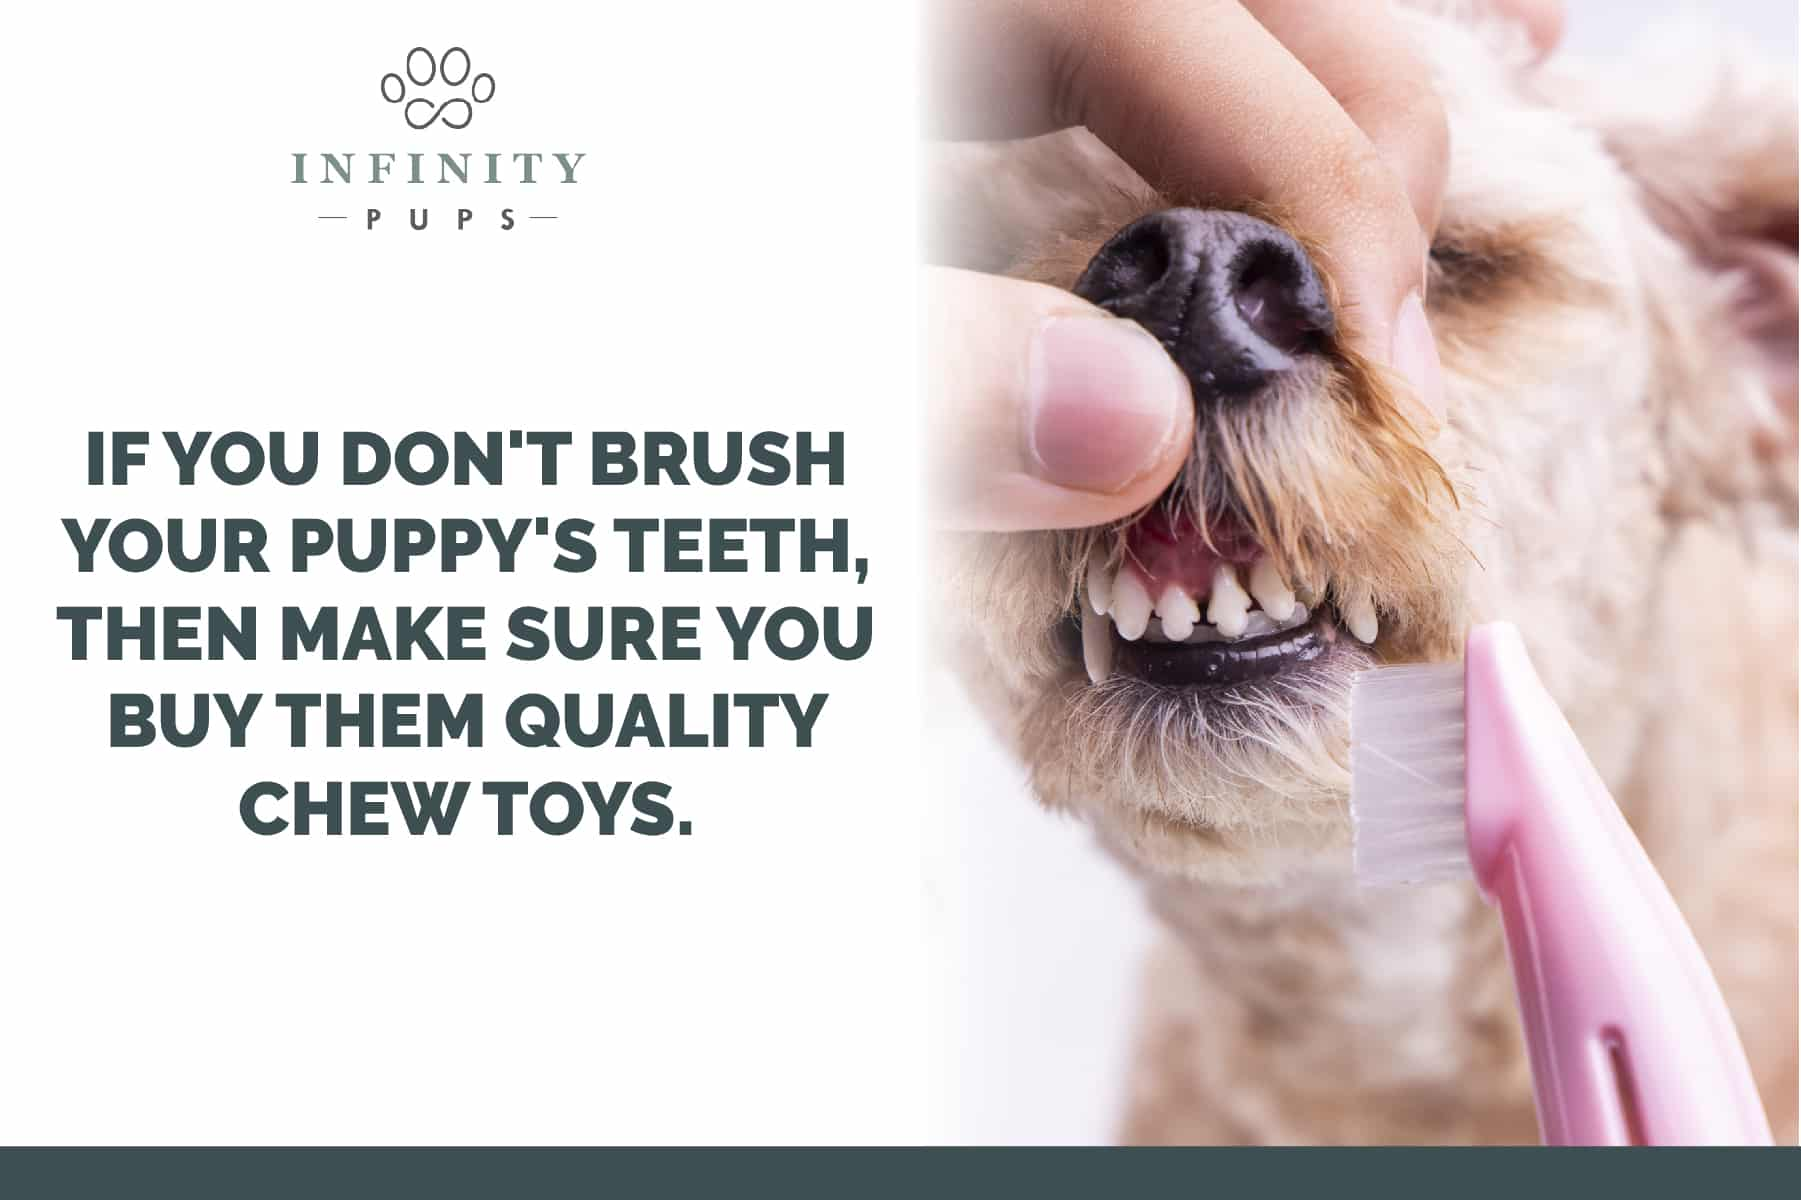 buy quality chew toys to help your puppy's teeth